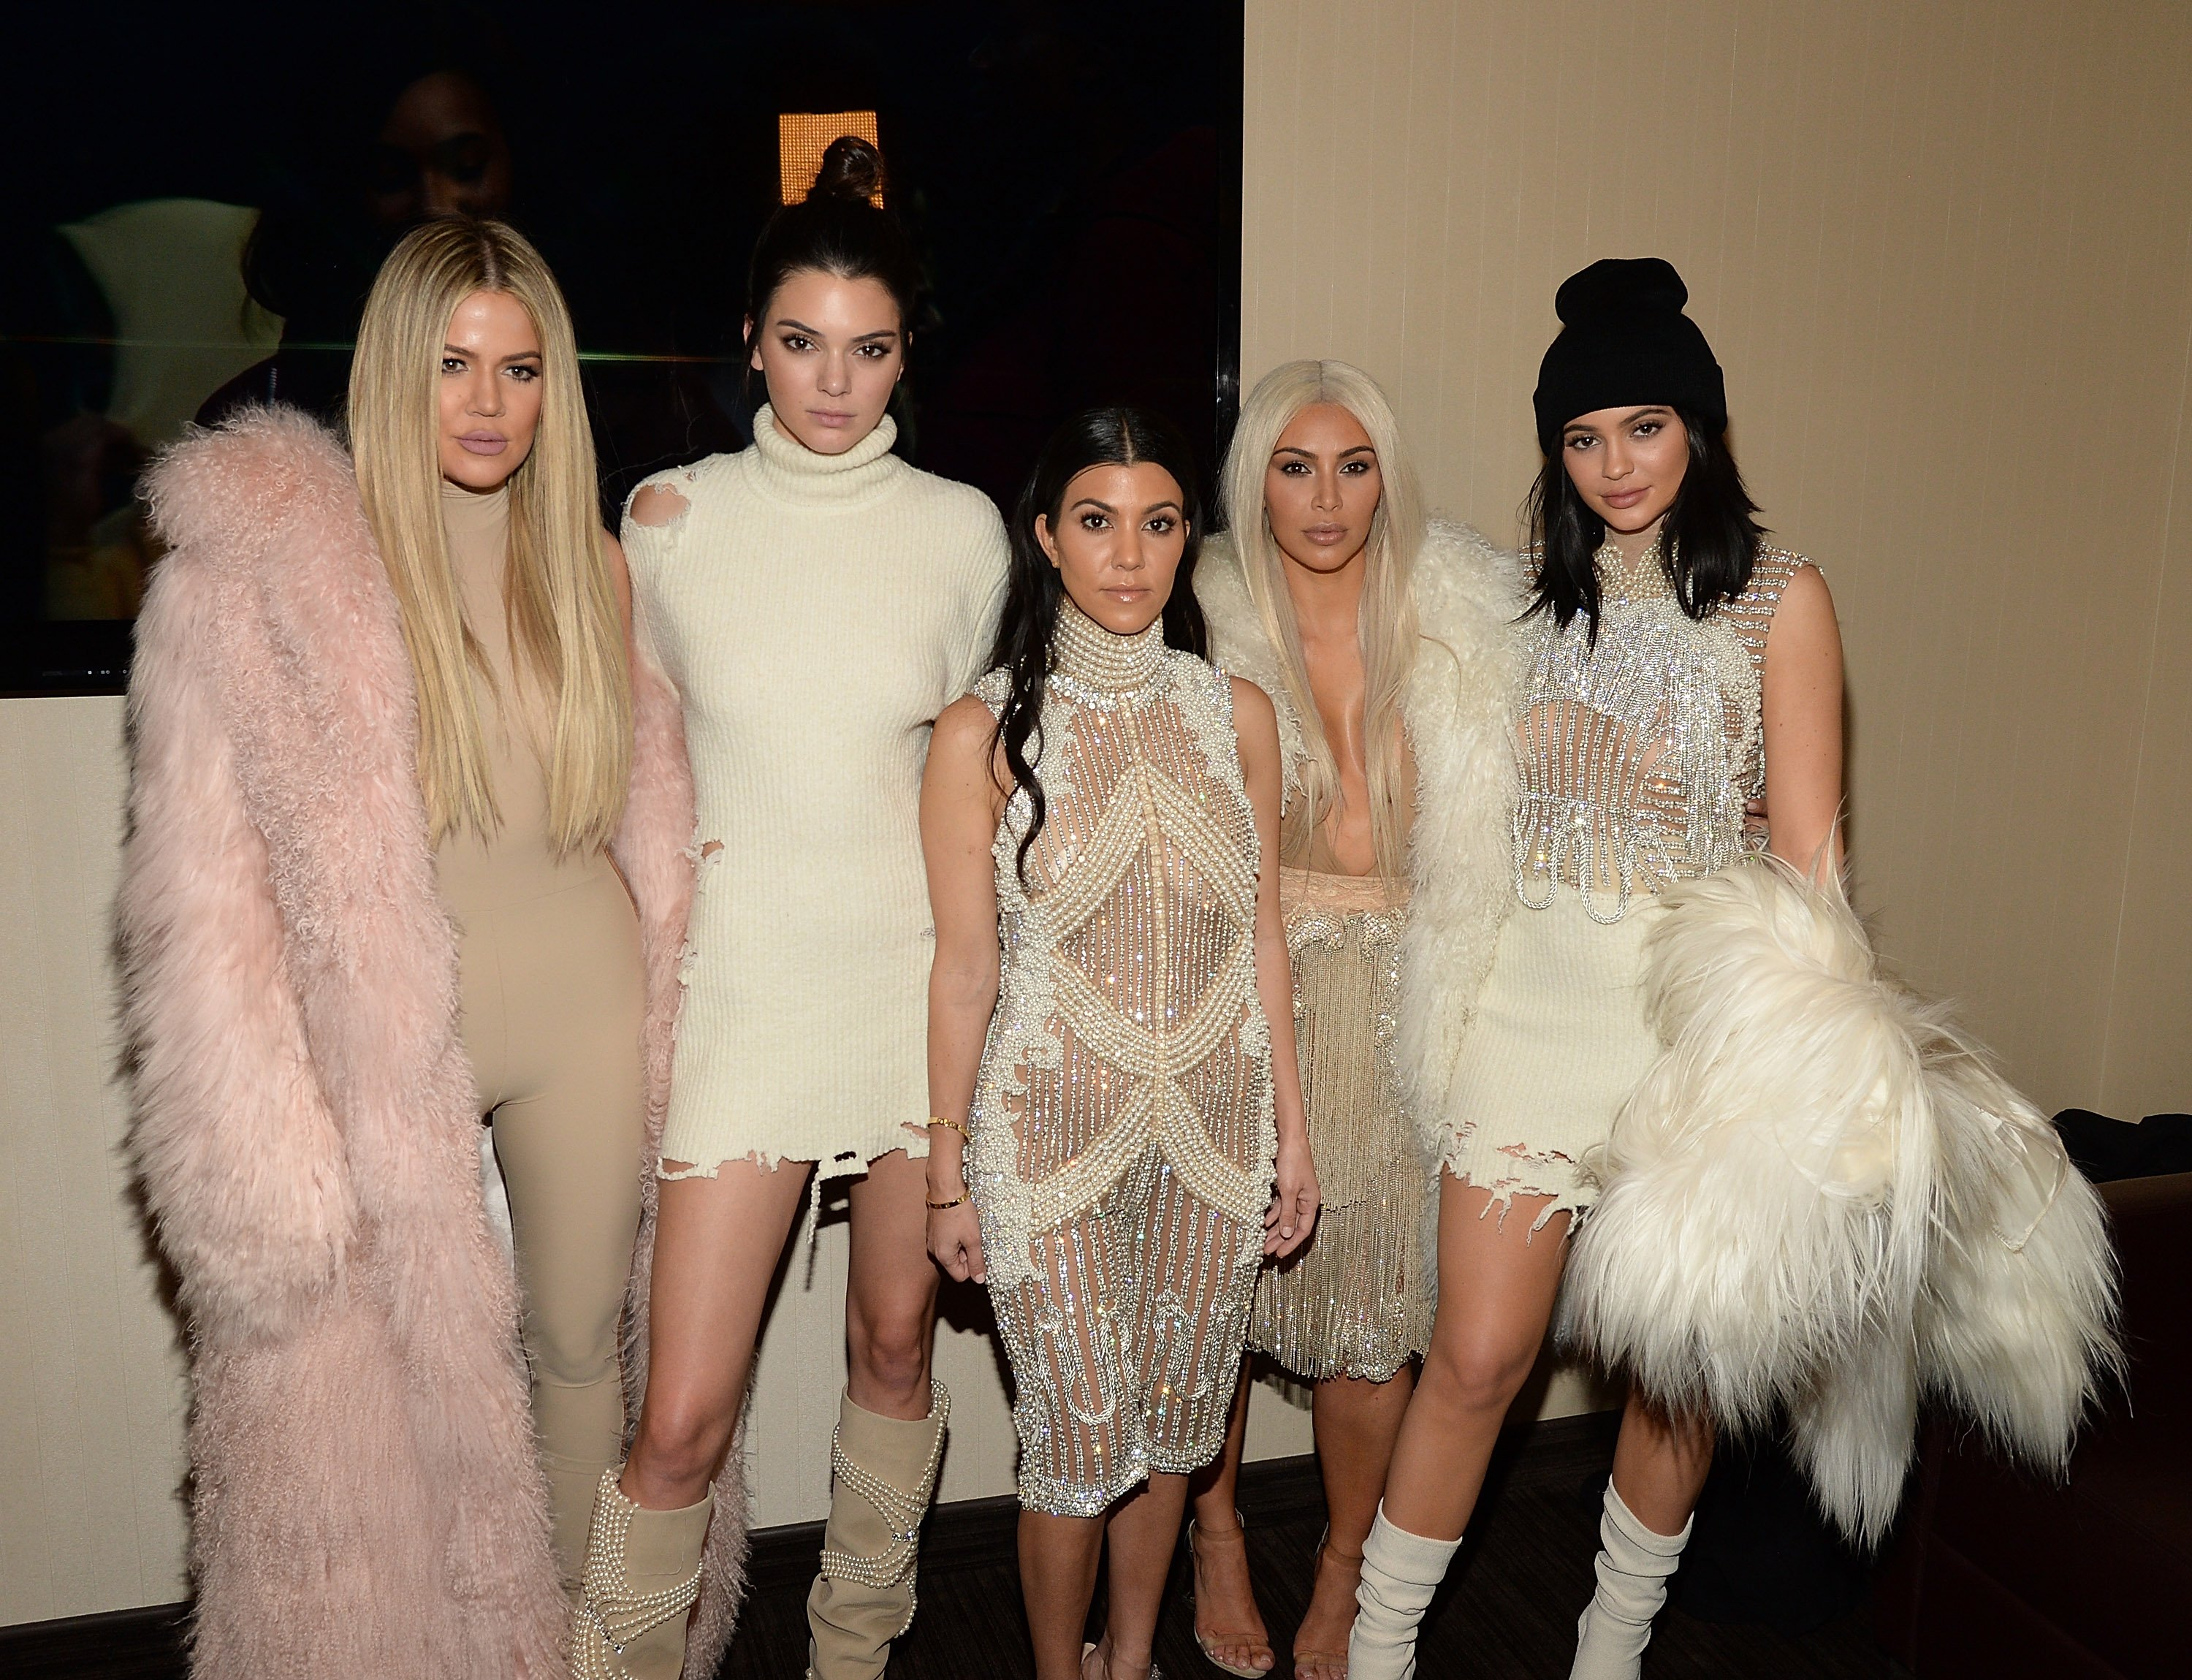 Image Credits: Getty Images / The Kardashian sisters